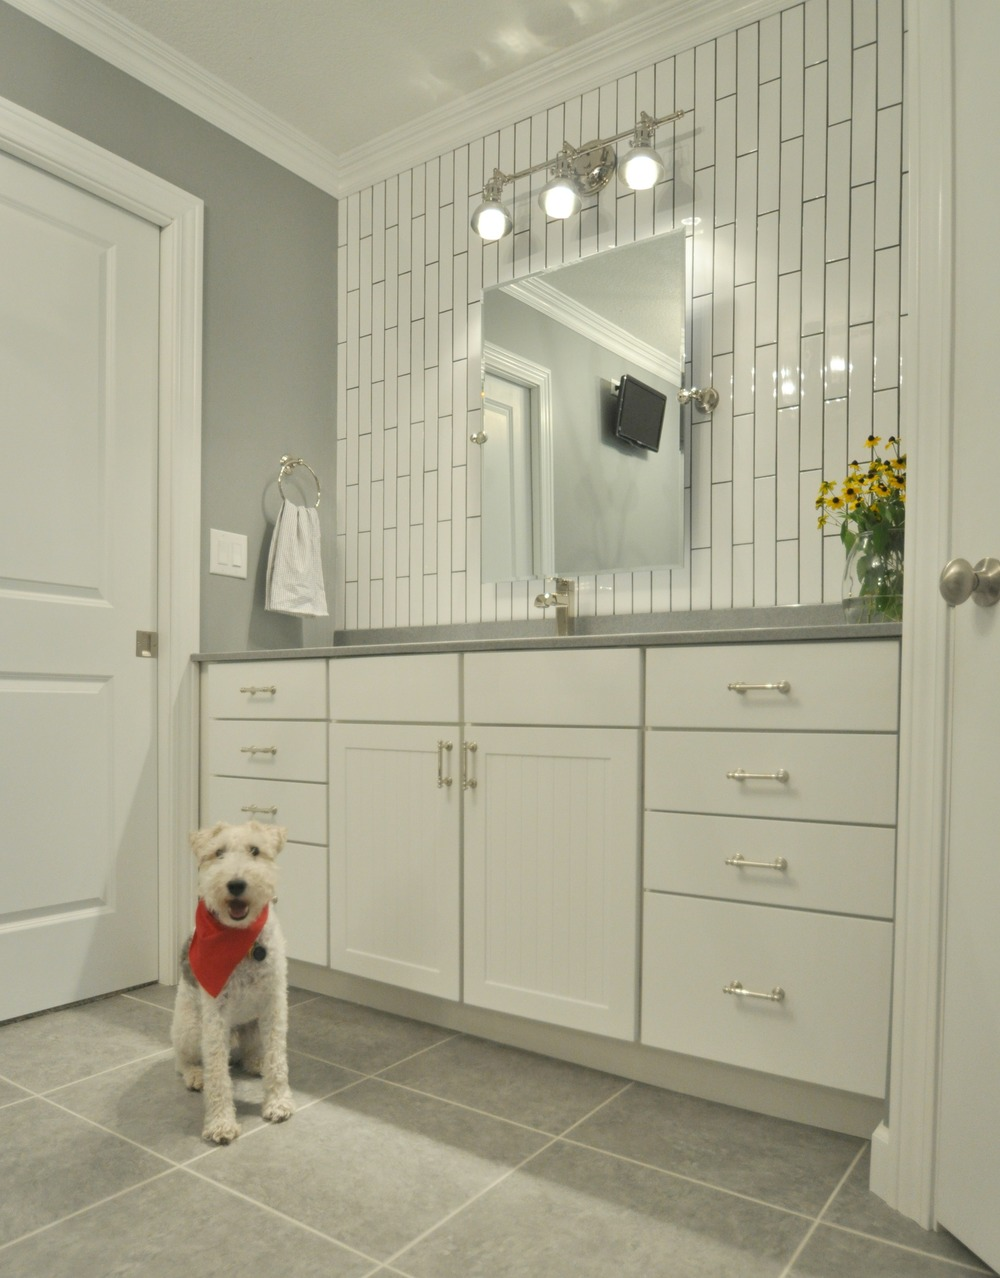 Master Bathroom Tile master bathroom reveal — decor and the dog